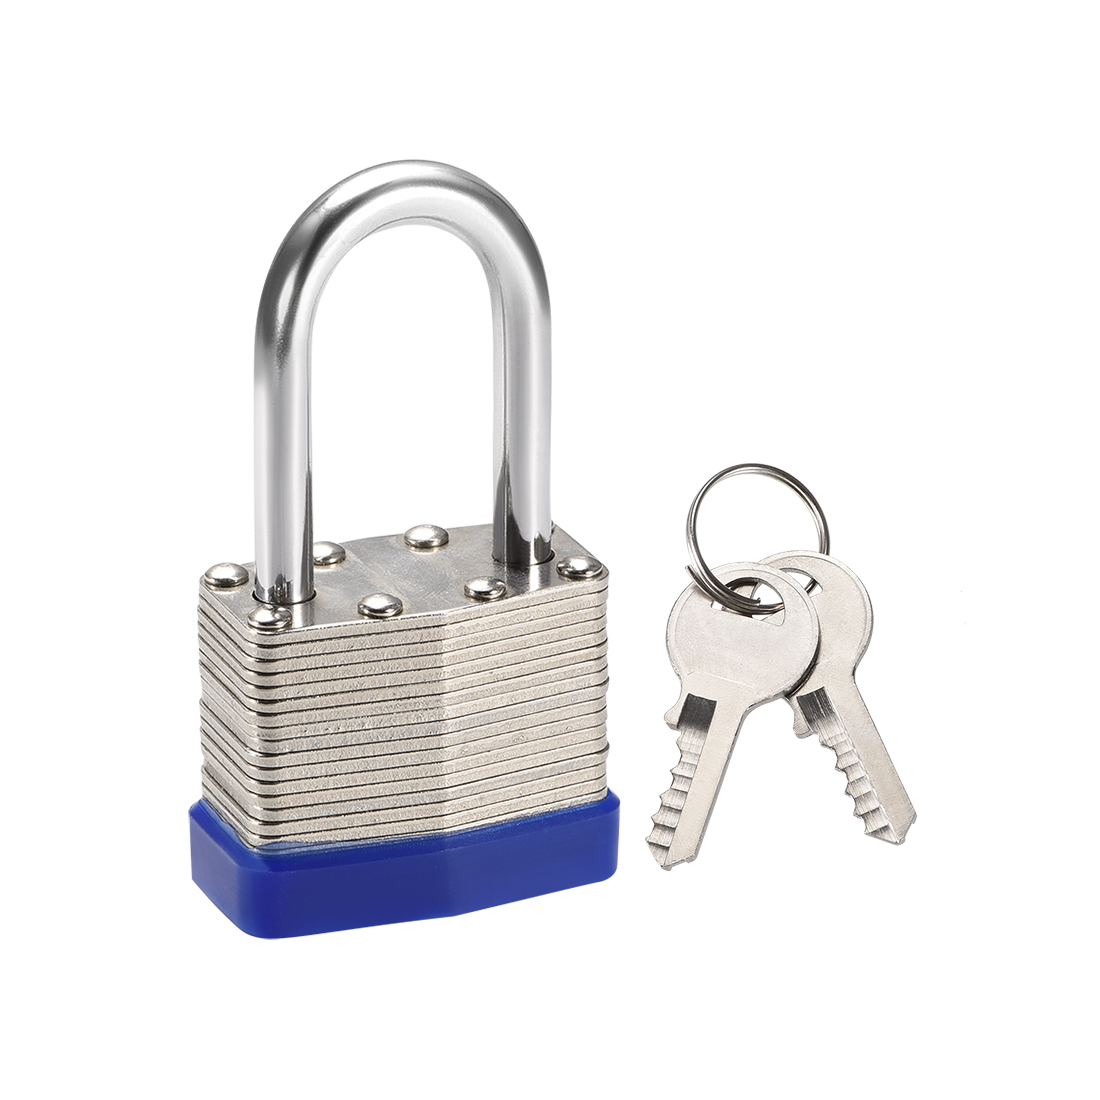 1-1/2 Inch Shackle Key Different Safety Padlock Steel Lock